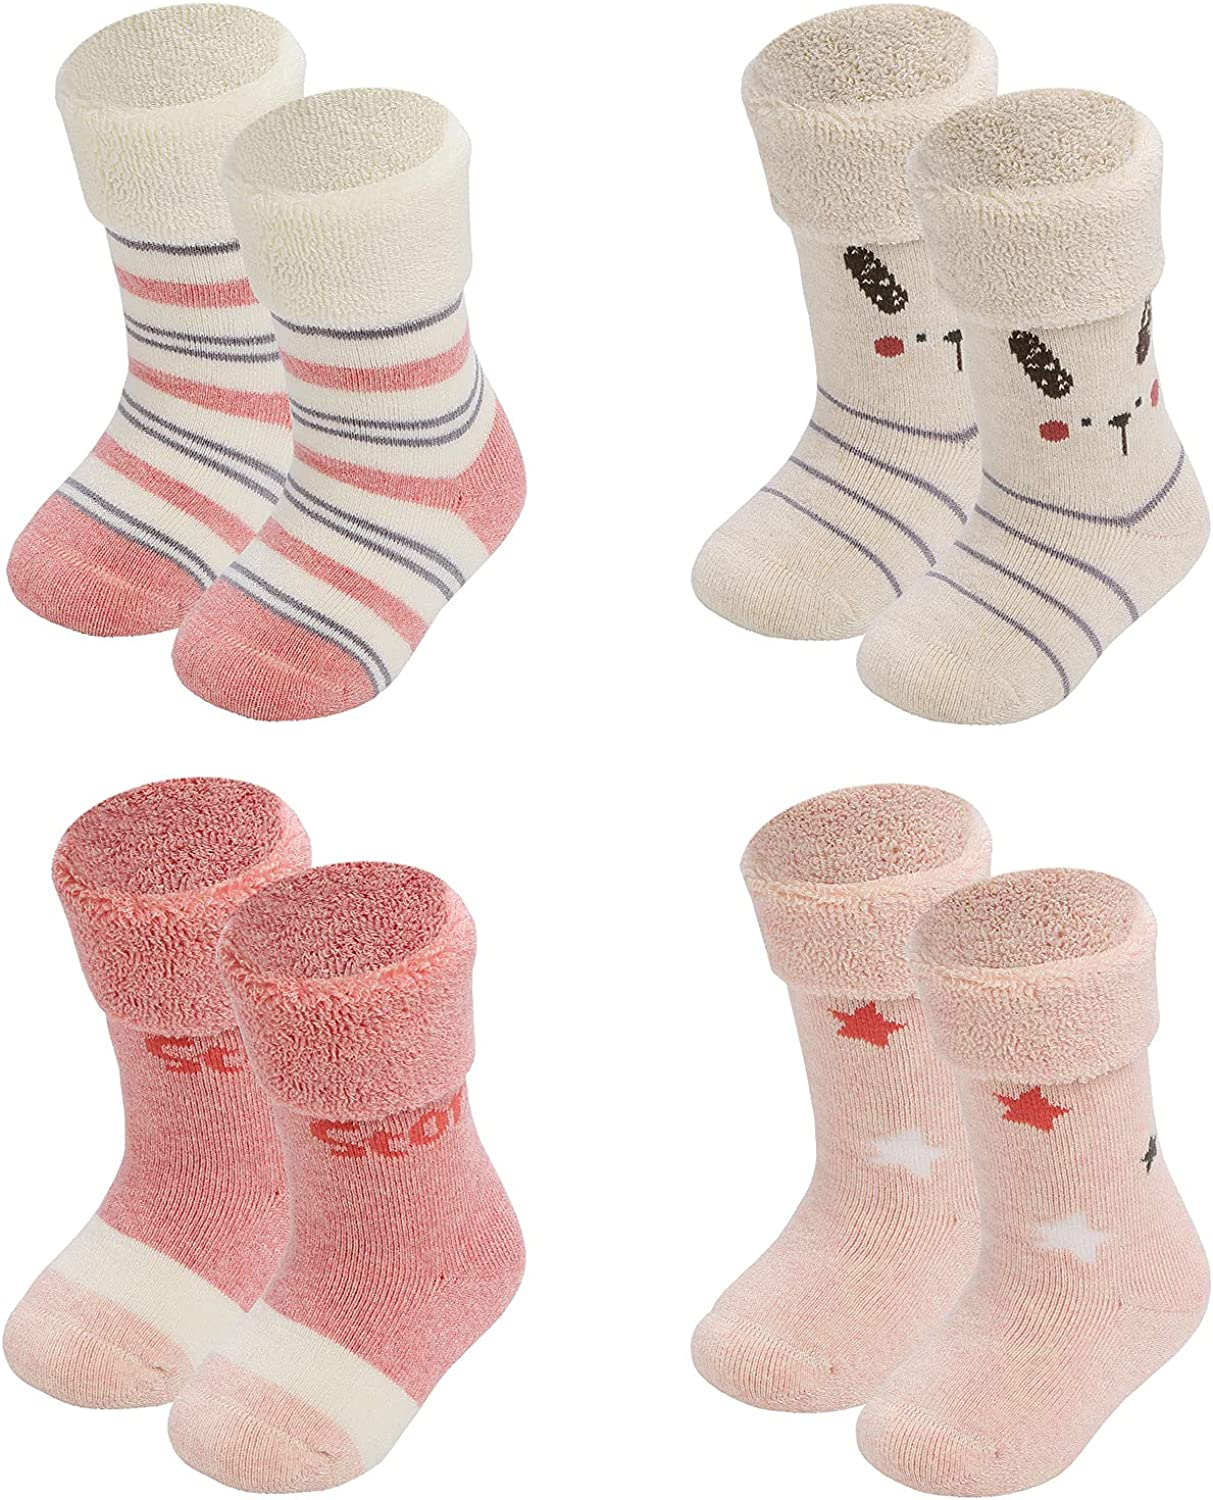 Human Feelings Baby 4 Pack 6-12 Special price for a limited time newborn Months thick Surprise price socks Terry